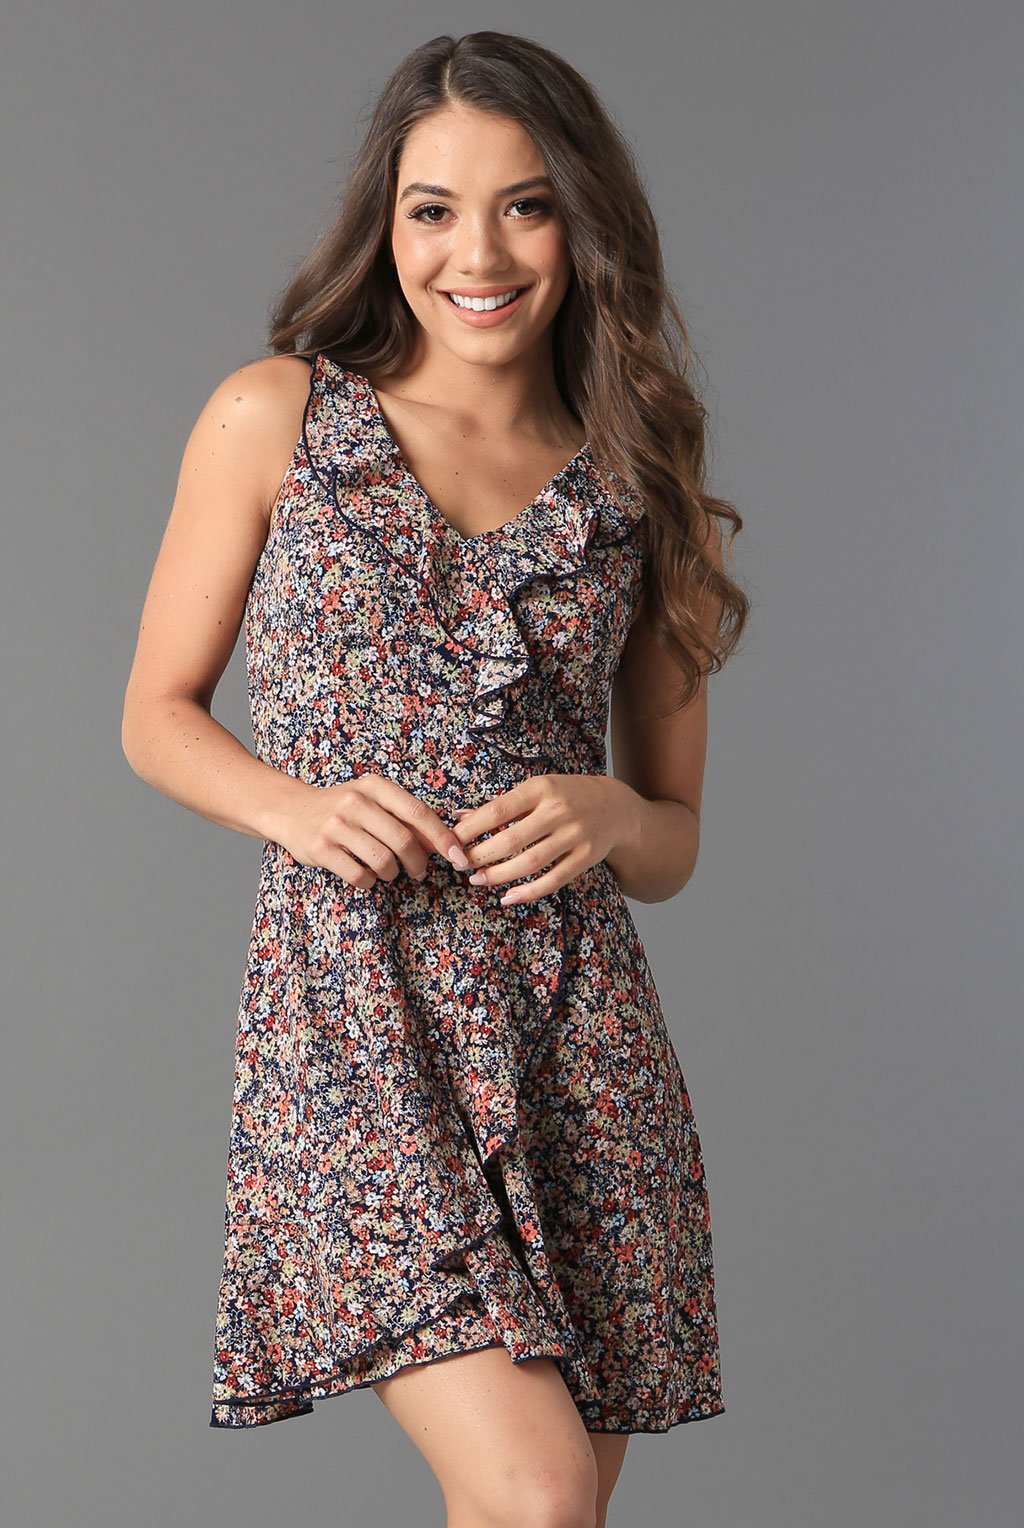 Teeze Me | Sleeveless Floral Ruffle Faux Wrap Dress  | Navy/Multi - Teeze Me